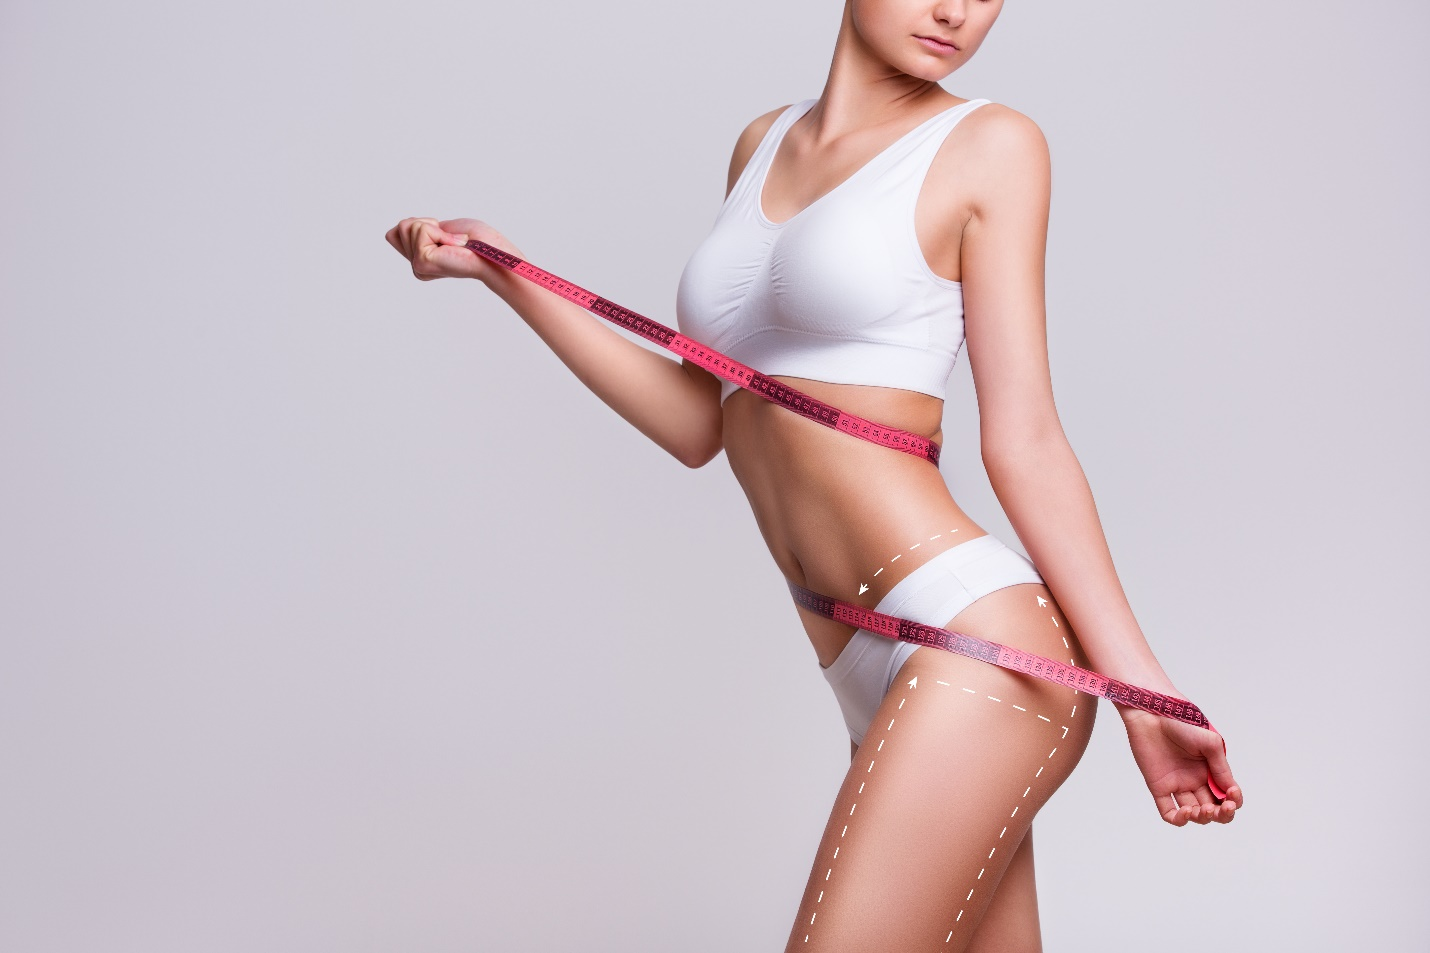 A female model with a body measuring tape showing the effects of liposuction.